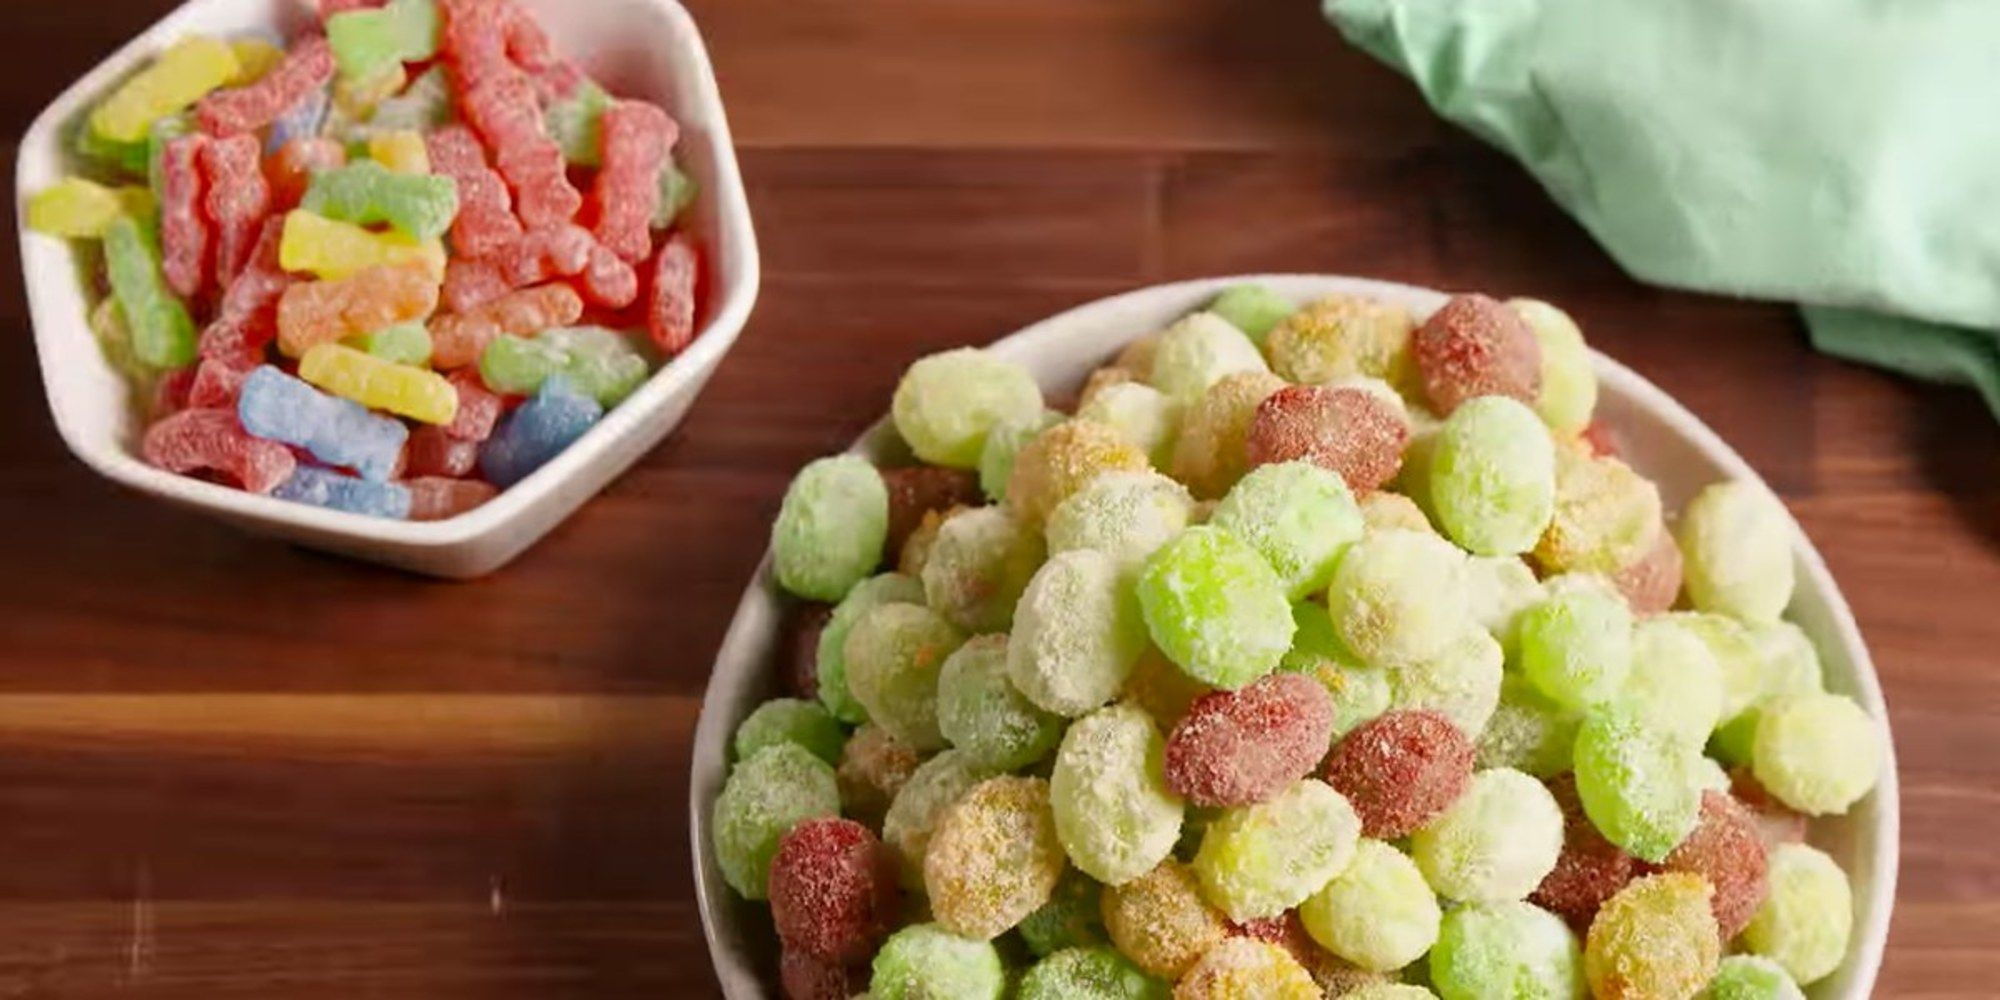 How To Make Sour Patch Grapes Sour patch grapes, Grapes